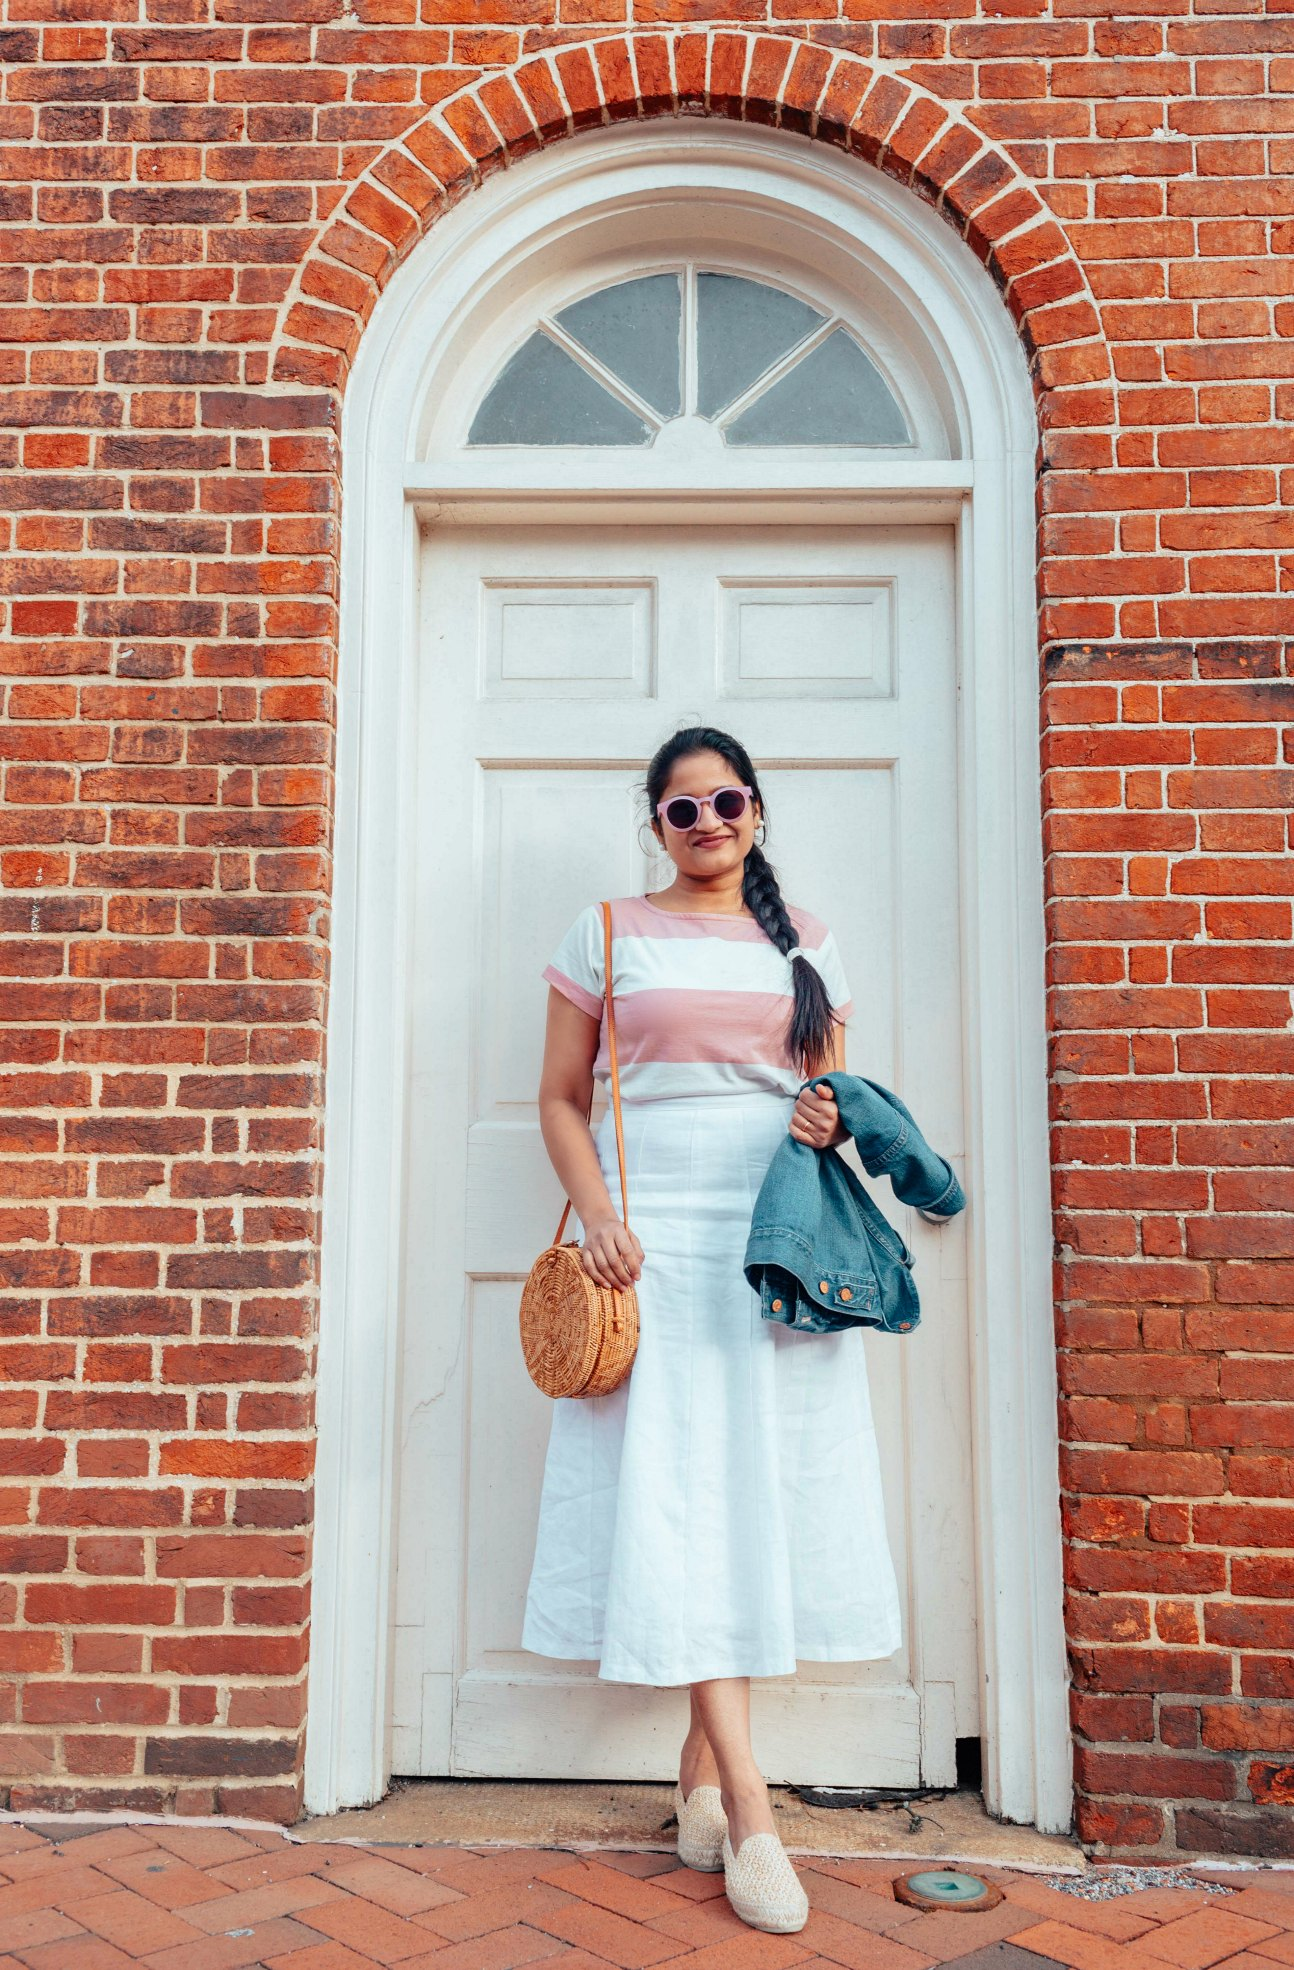 Modest Spring outfits featured by top US fashion blog, Dreaming Loud: image of a woman wearing a BP striped tee, Boden ivory midi skirt, MANEBI raffia espadrilles, Madewell denim jacket and round rattan shoulder bag